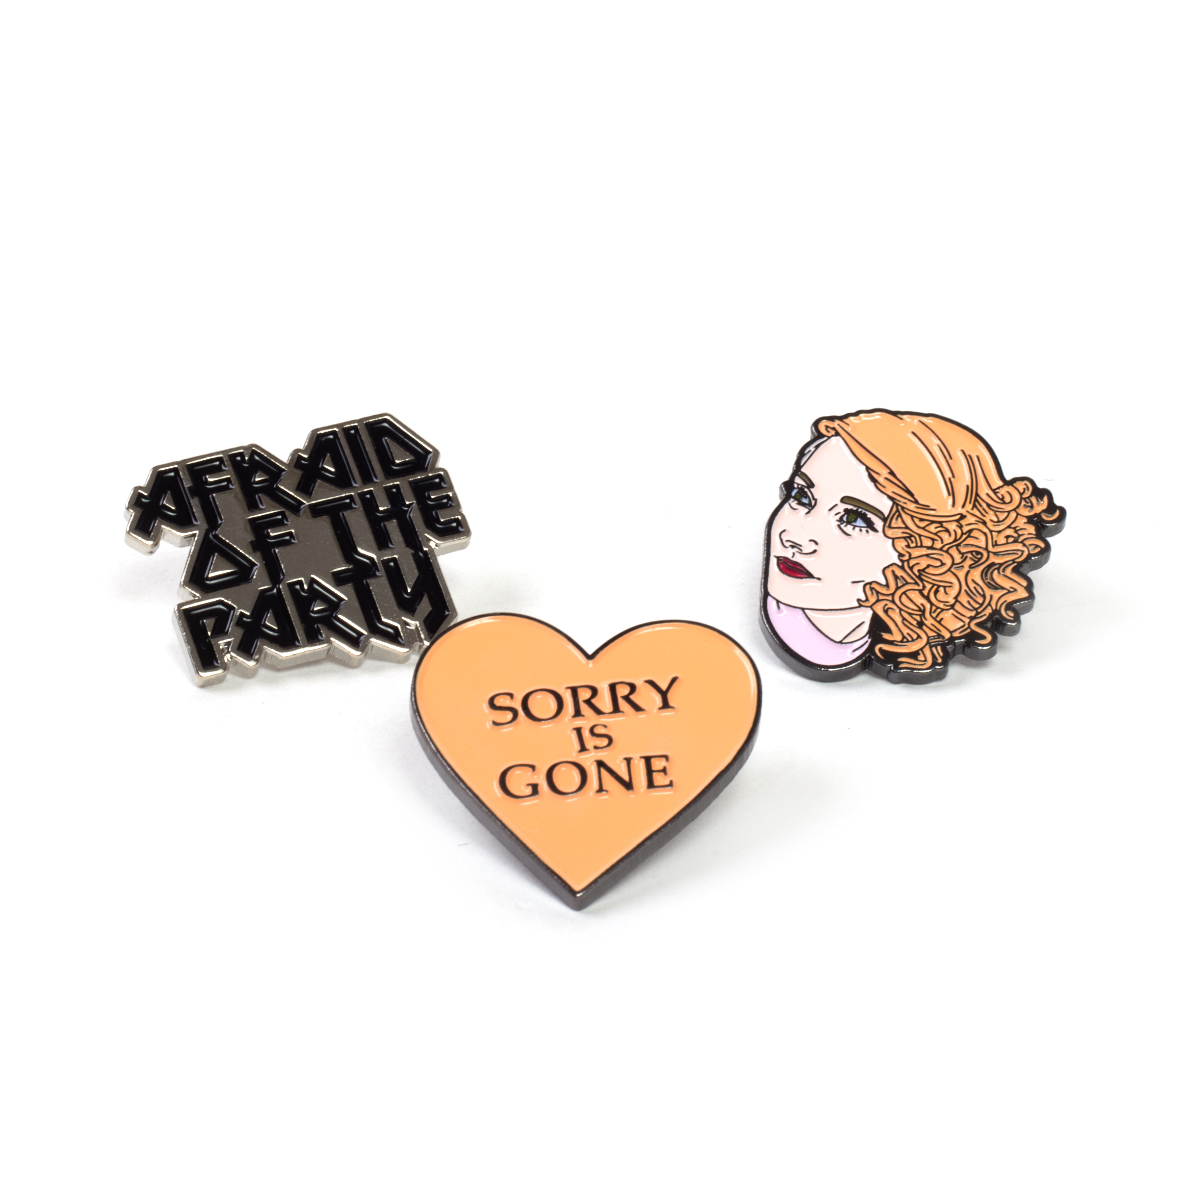 Jessica Lea Mayfield 3 Pin Pack